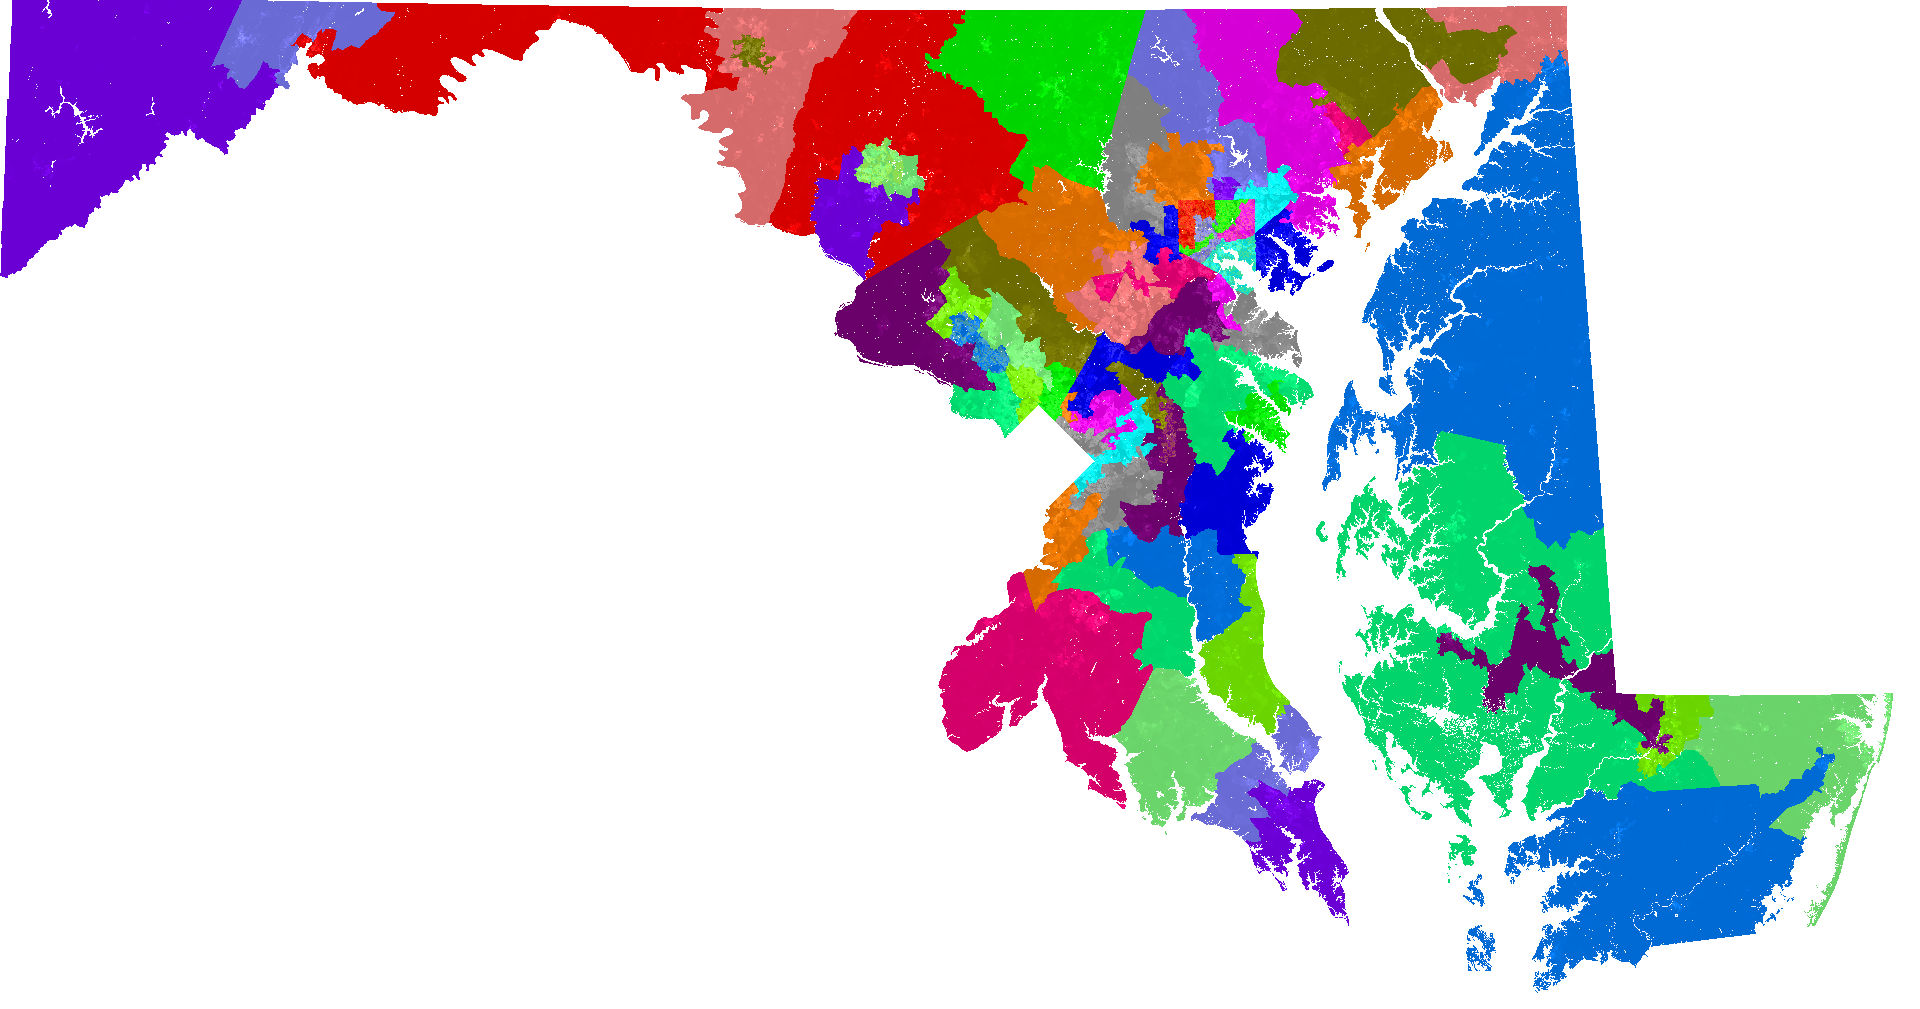 maryland senate district map Maryland House Of Delegates Redistricting maryland senate district map